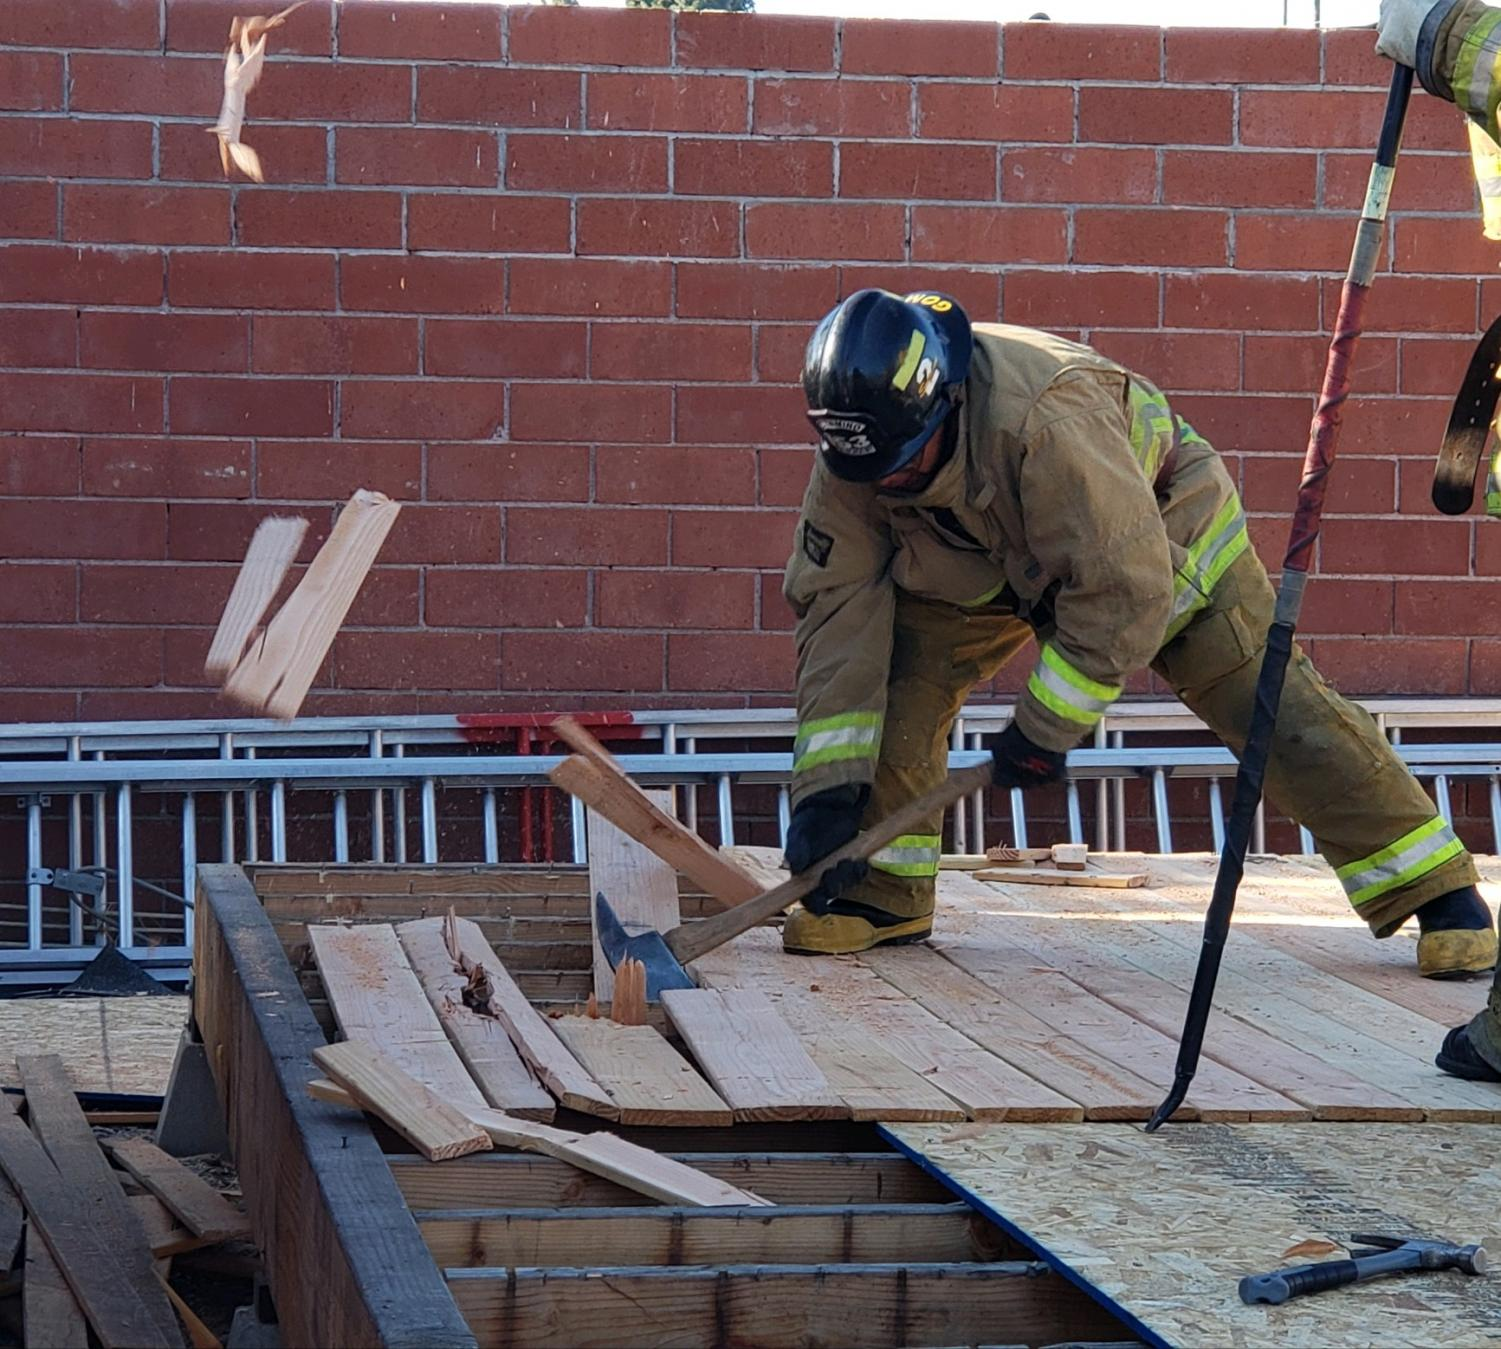 El Camino College Fire Academy student Alex Gomez practices cutting holes in wooden boards with an axe for roof operations Wednesday, Oct. 23. The academy, formerly known as the South Bay Fire Academy, has been training firefighters for 50 years. David Rondthaler/The Union